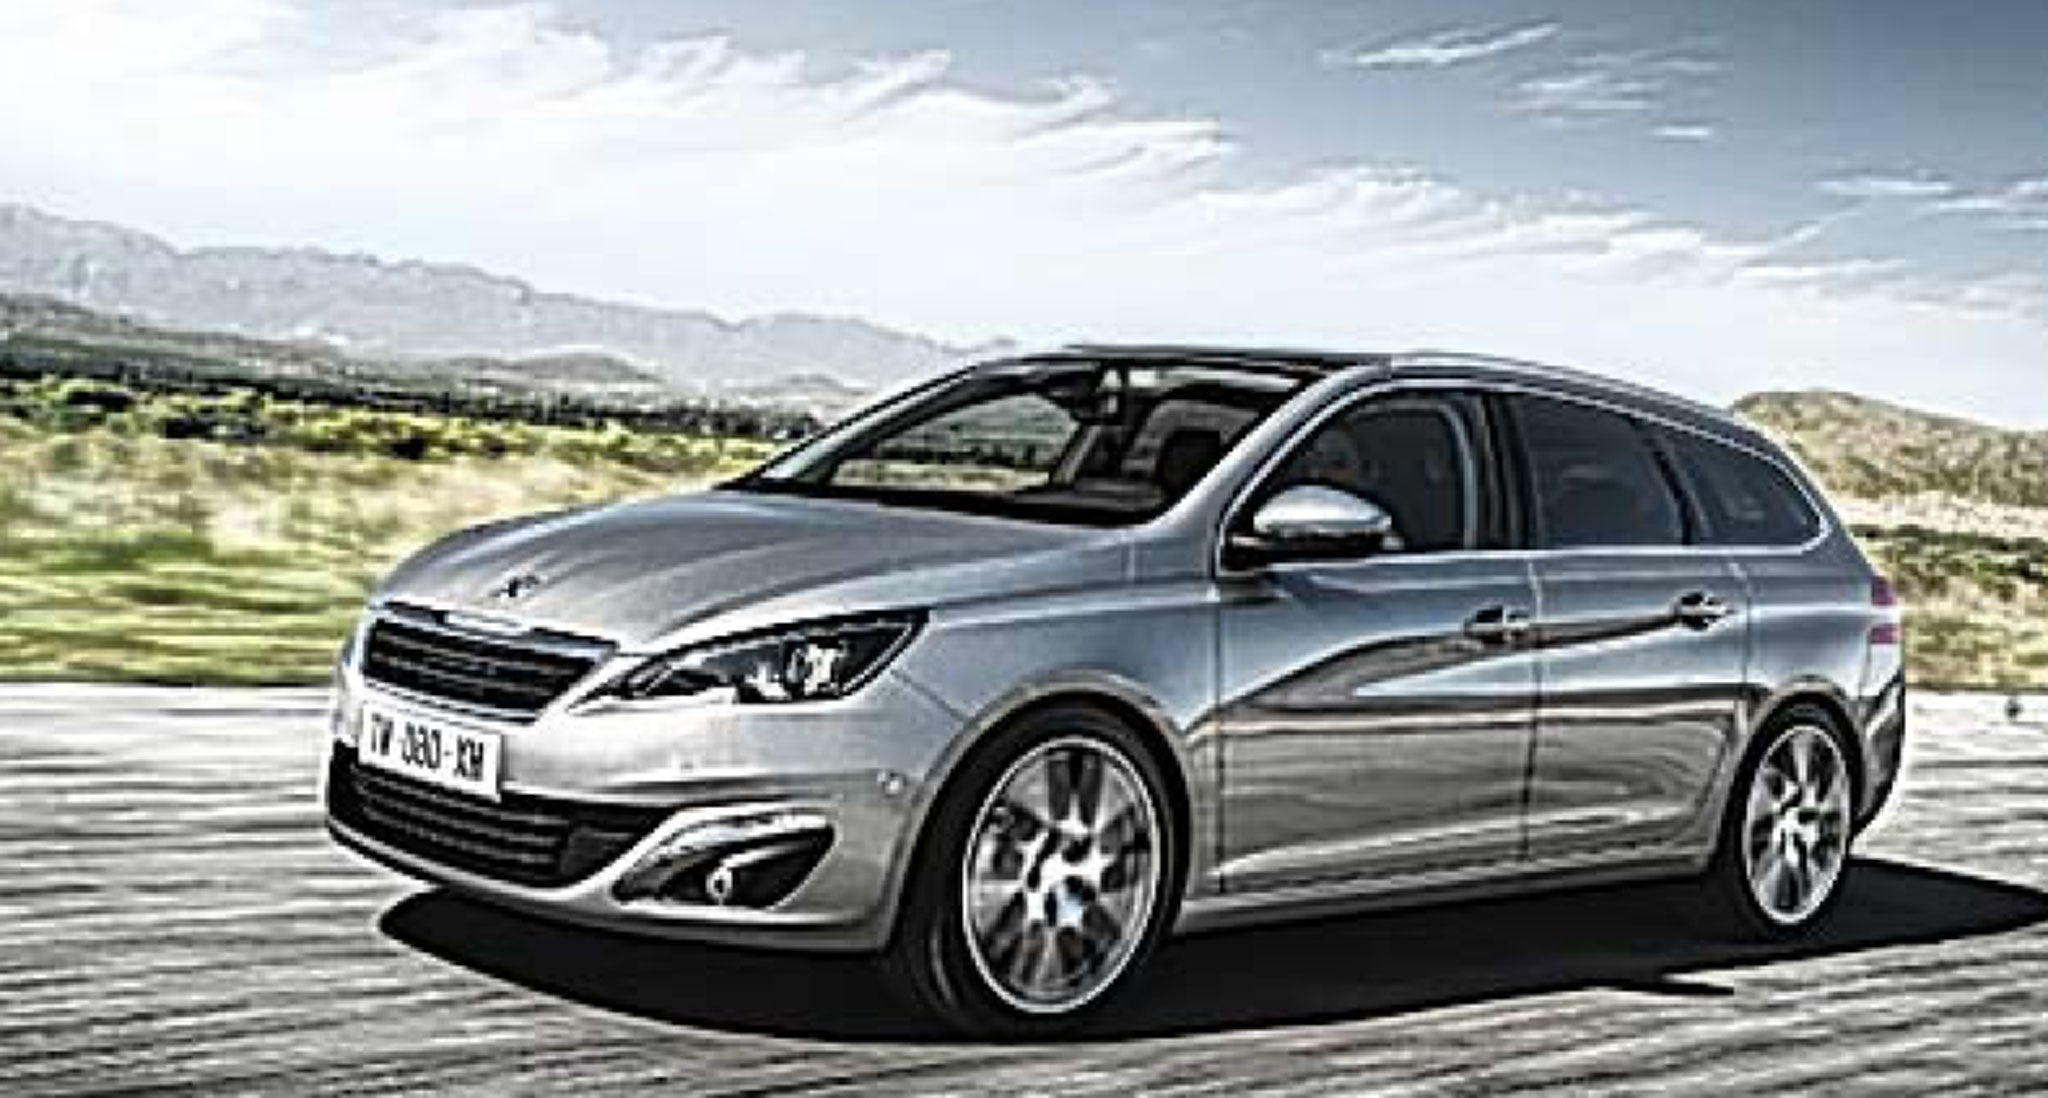 peugeot 308 sw motoring review worthy of awards but save money and opt out of sport mode. Black Bedroom Furniture Sets. Home Design Ideas